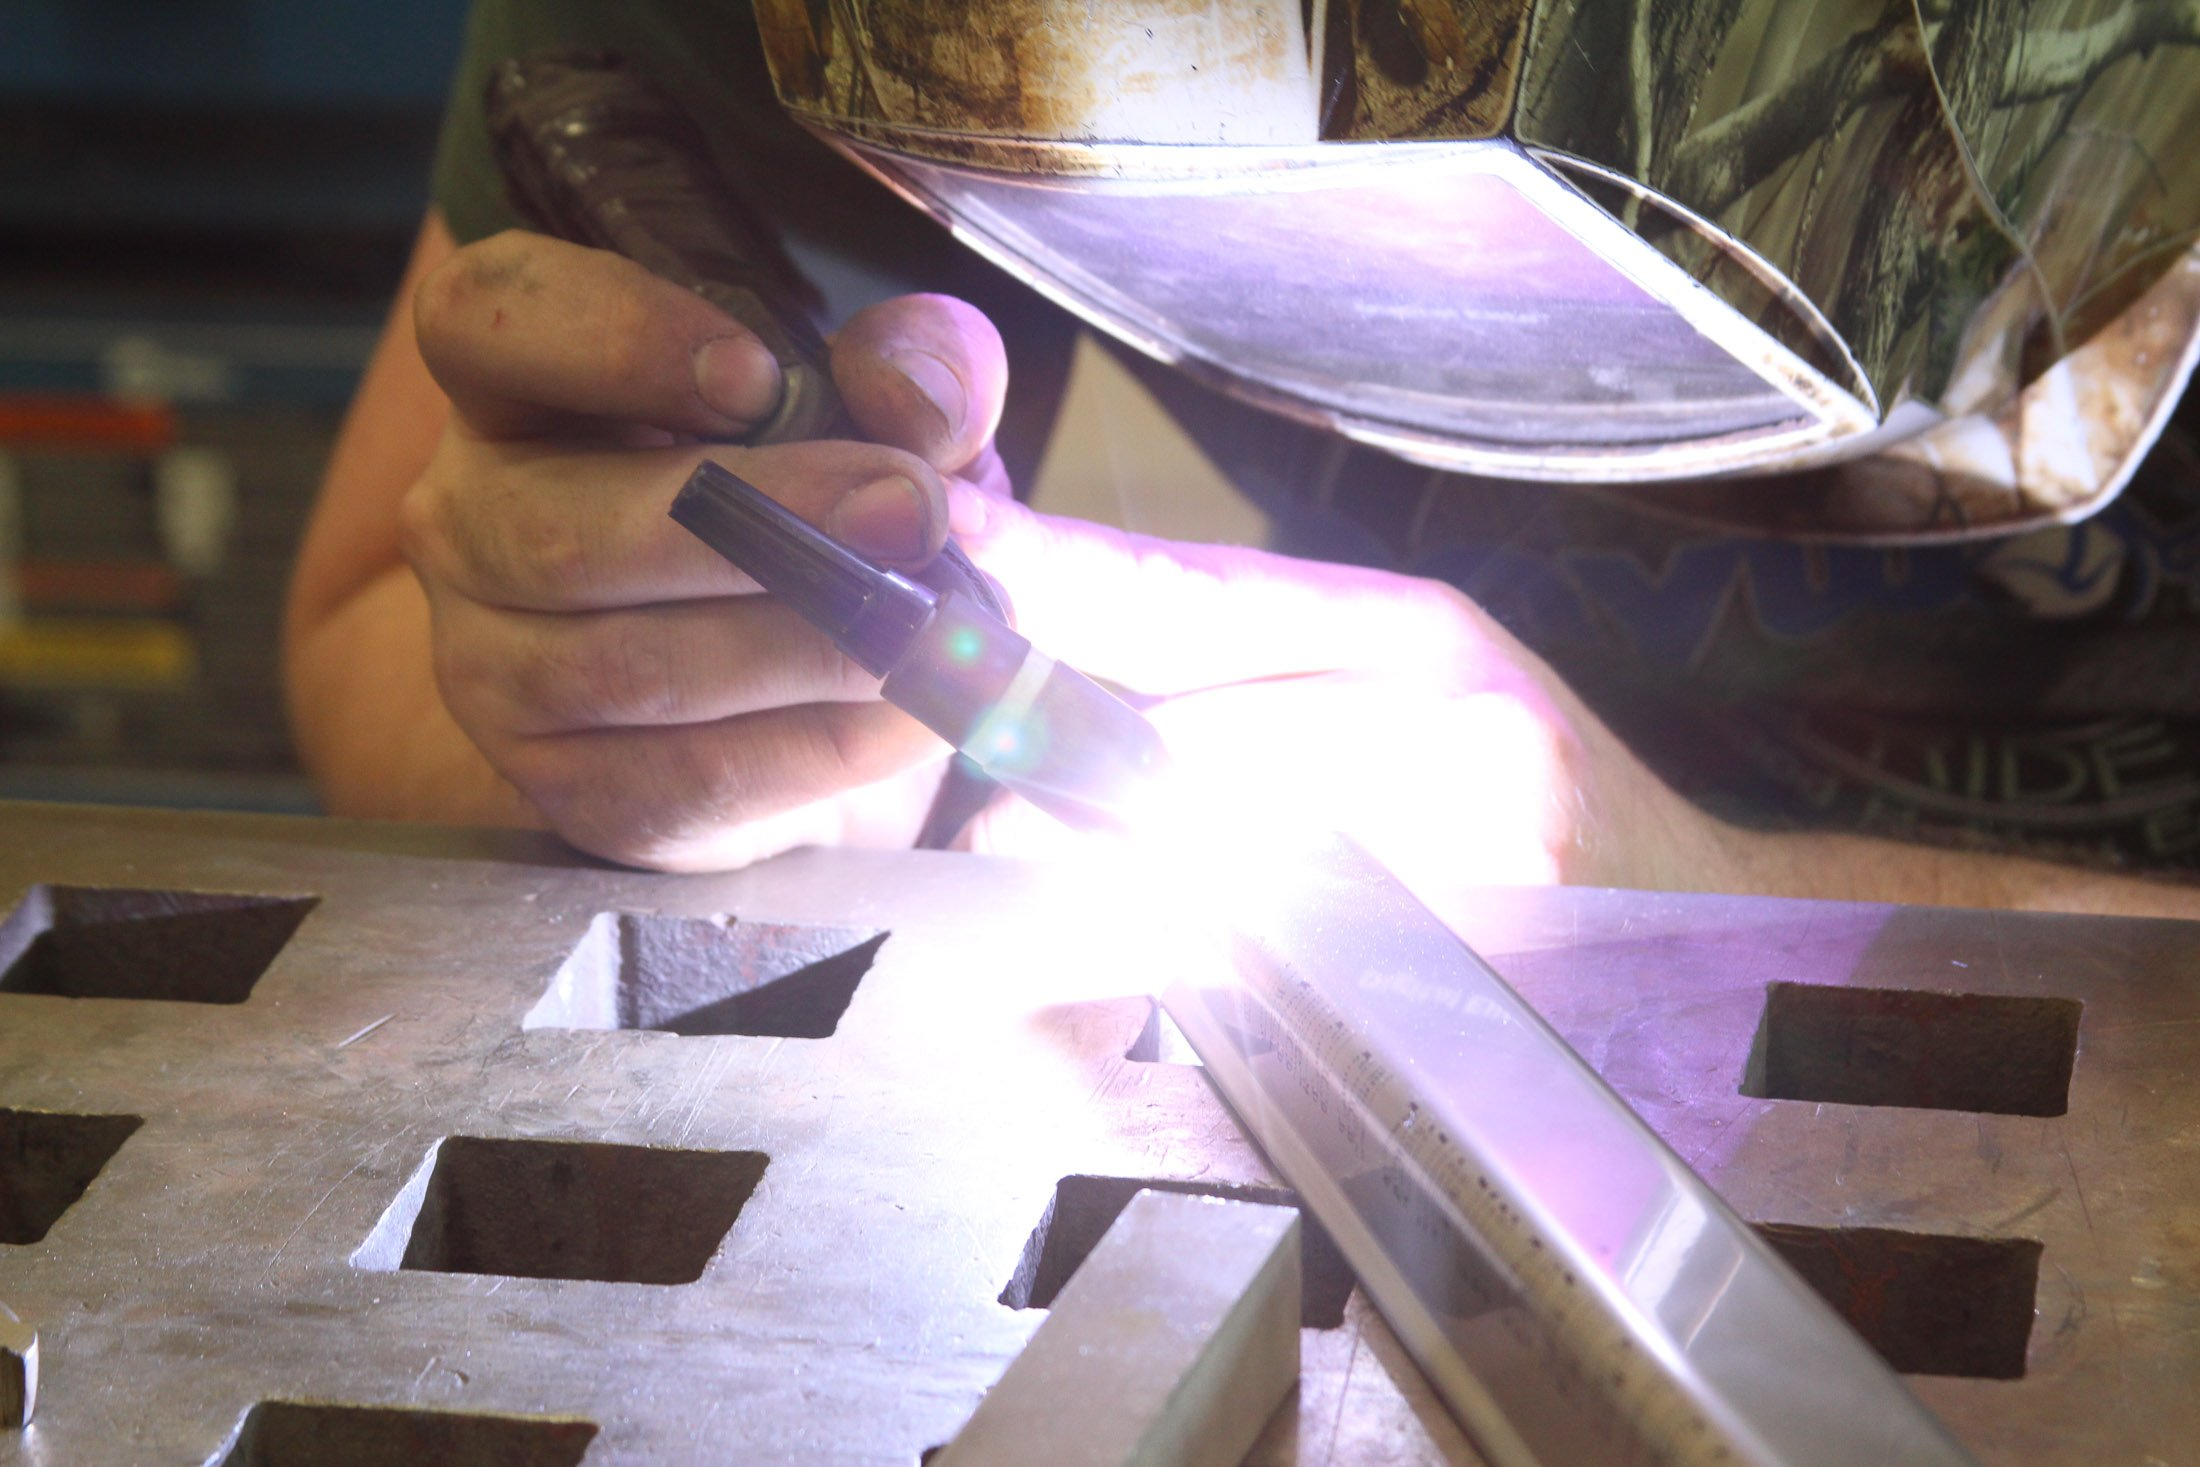 Badger Sheet Metal Works Produces High-Quality Fabricated Steel Products